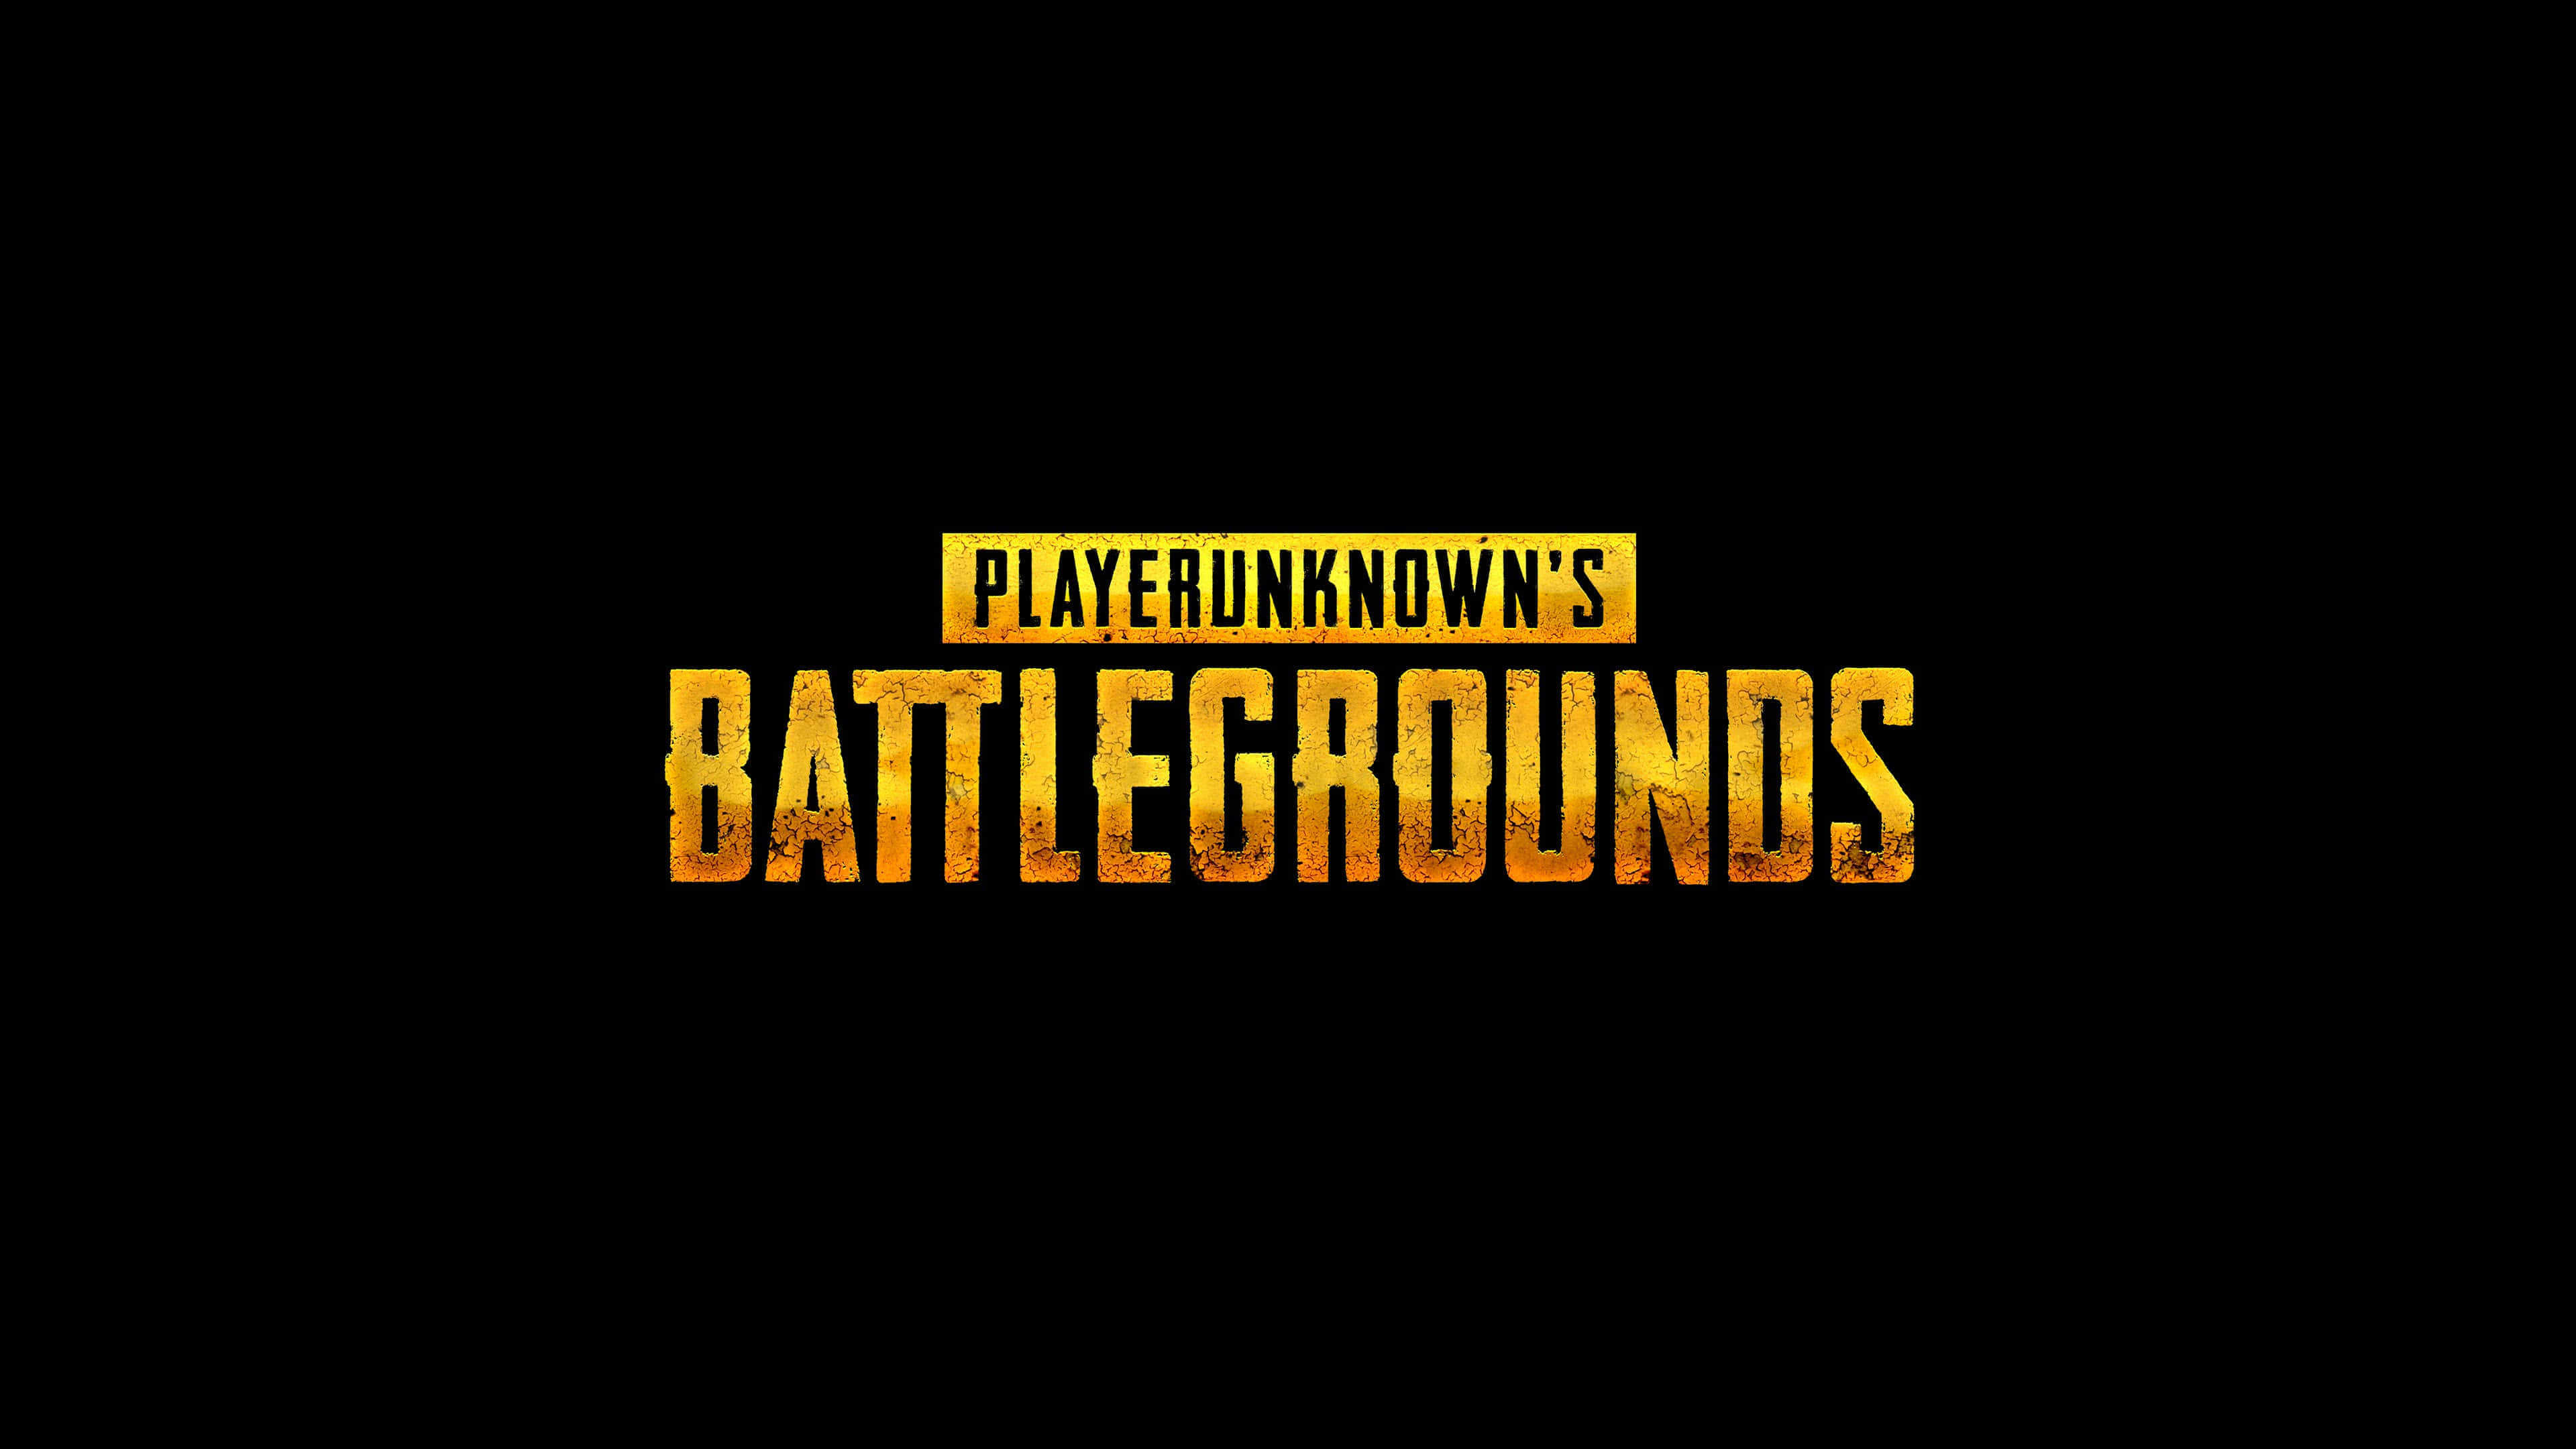 PUBG Player Unknown Battlegrounds Logo UHD 4K Wallpaper Pixelz 3840x2160